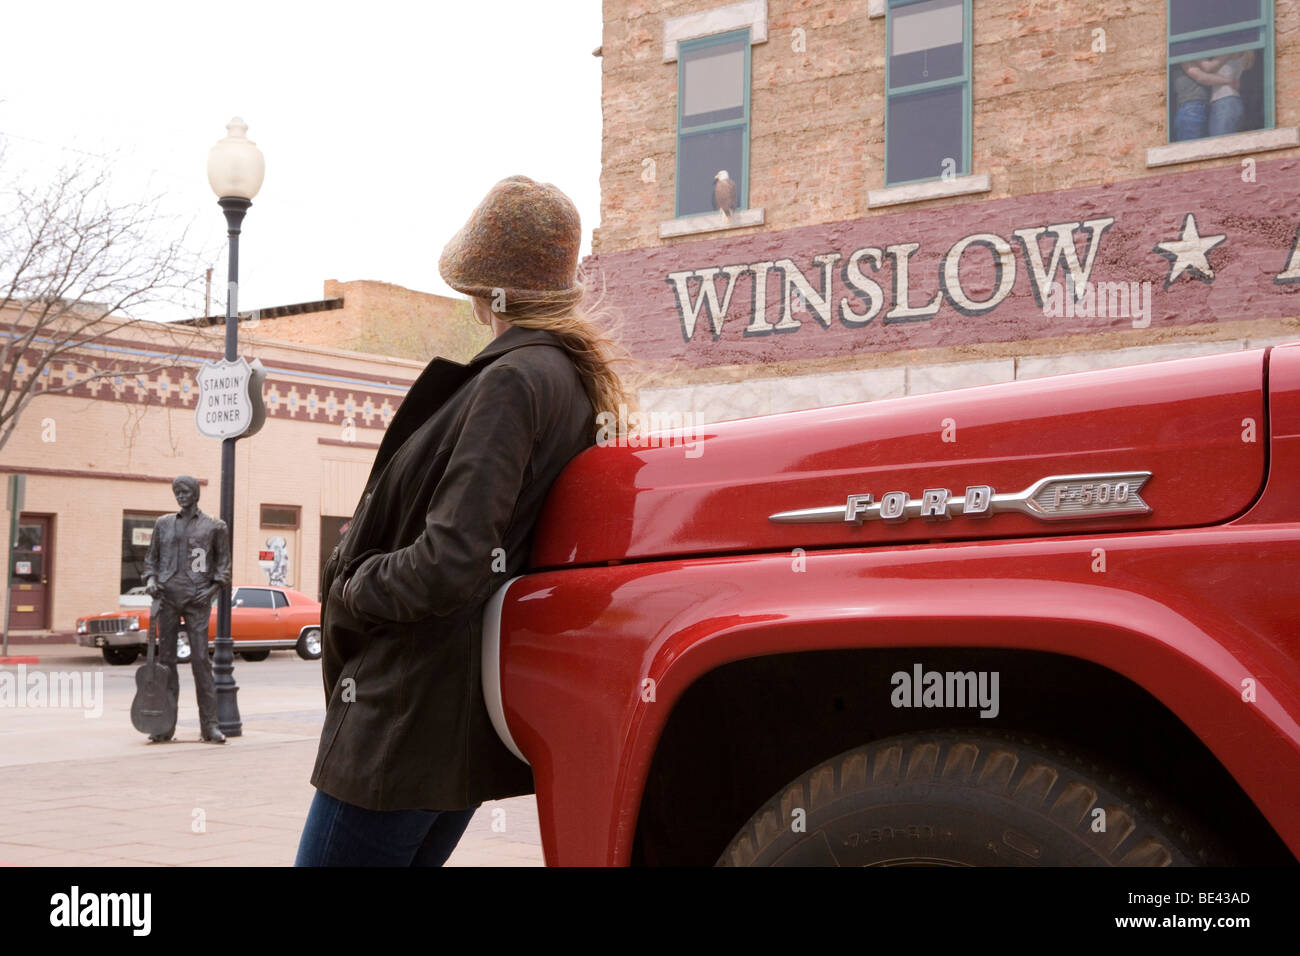 standing on the corner in winslow arizona stock photo 25906005 alamy. Black Bedroom Furniture Sets. Home Design Ideas